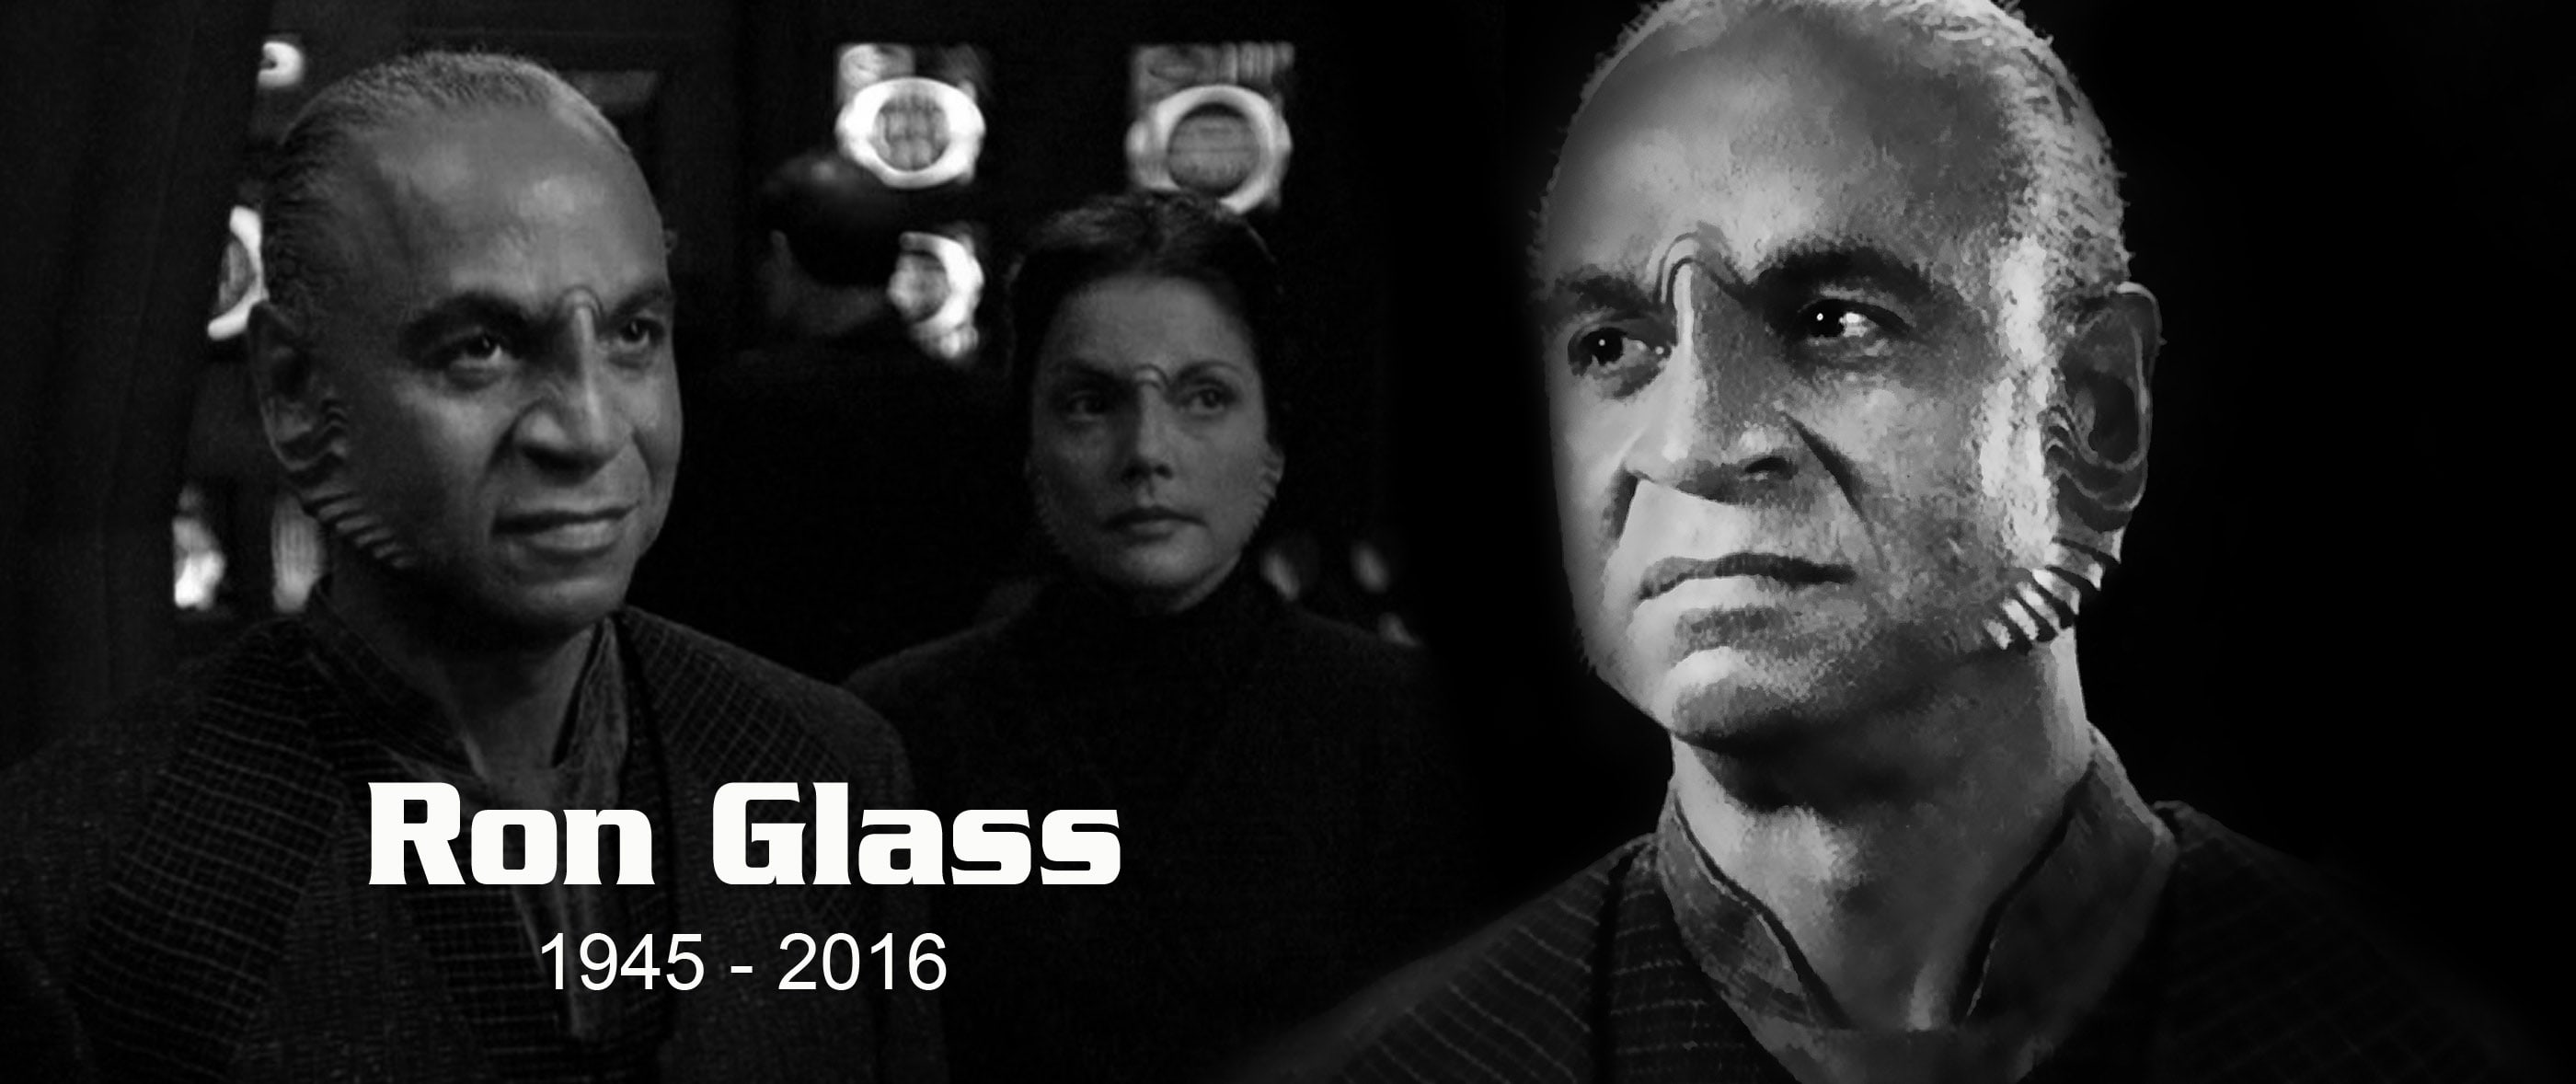 Ron Glass HQ wallpapers